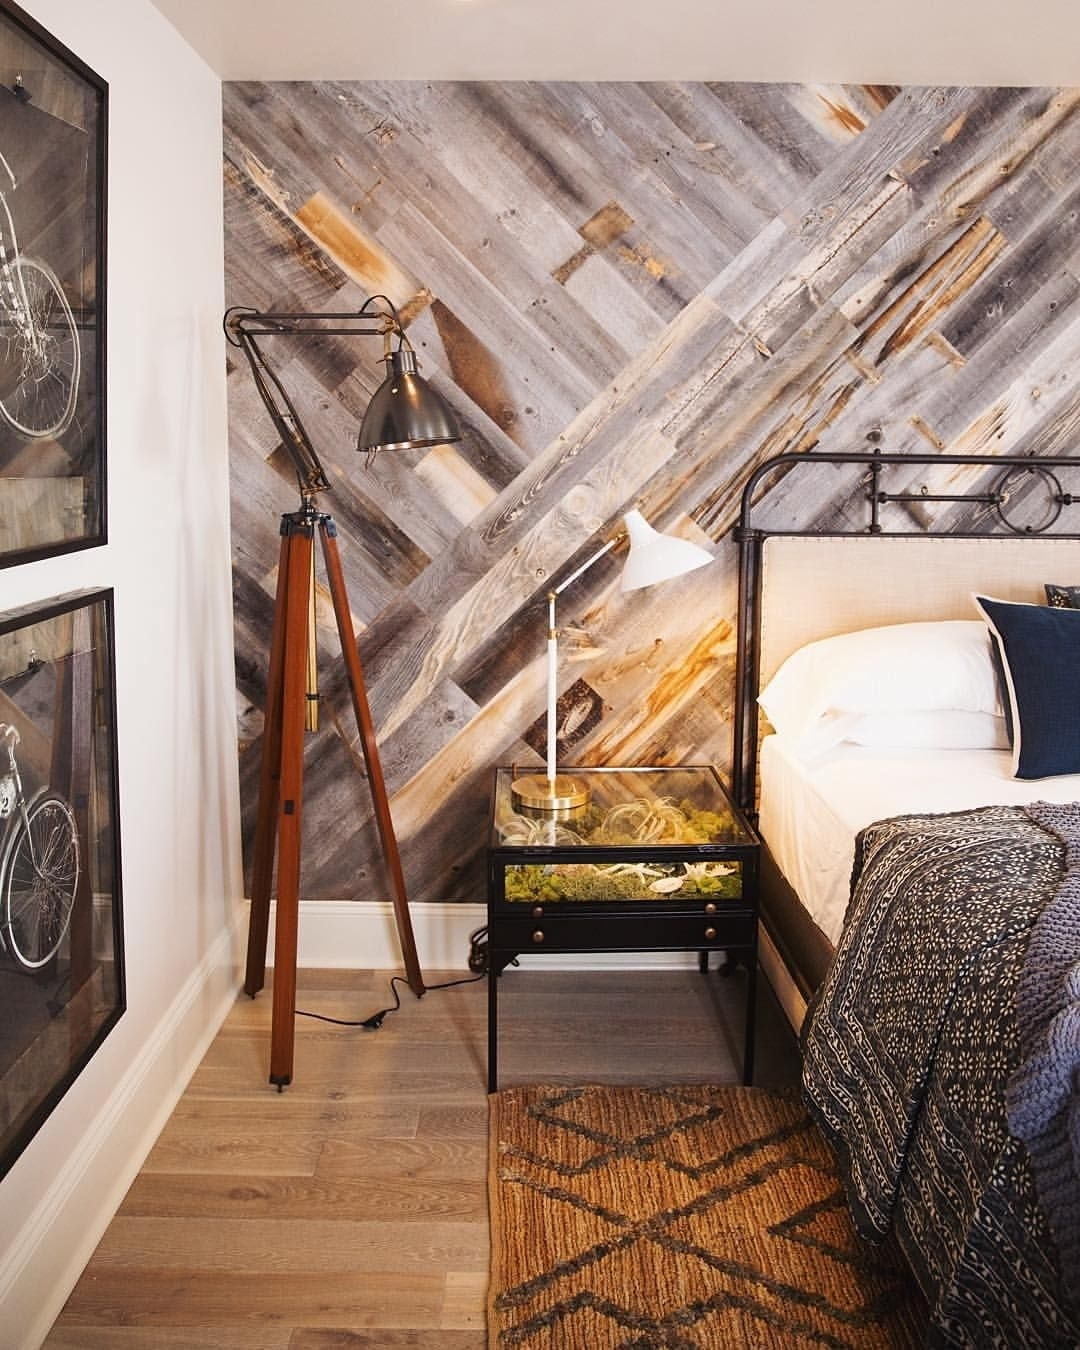 Diy Easy Peel And Stick Wood Wall Decor | Wood Walls, Reclaimed Pertaining To Current Wall Accents Made From Pallets (View 15 of 15)